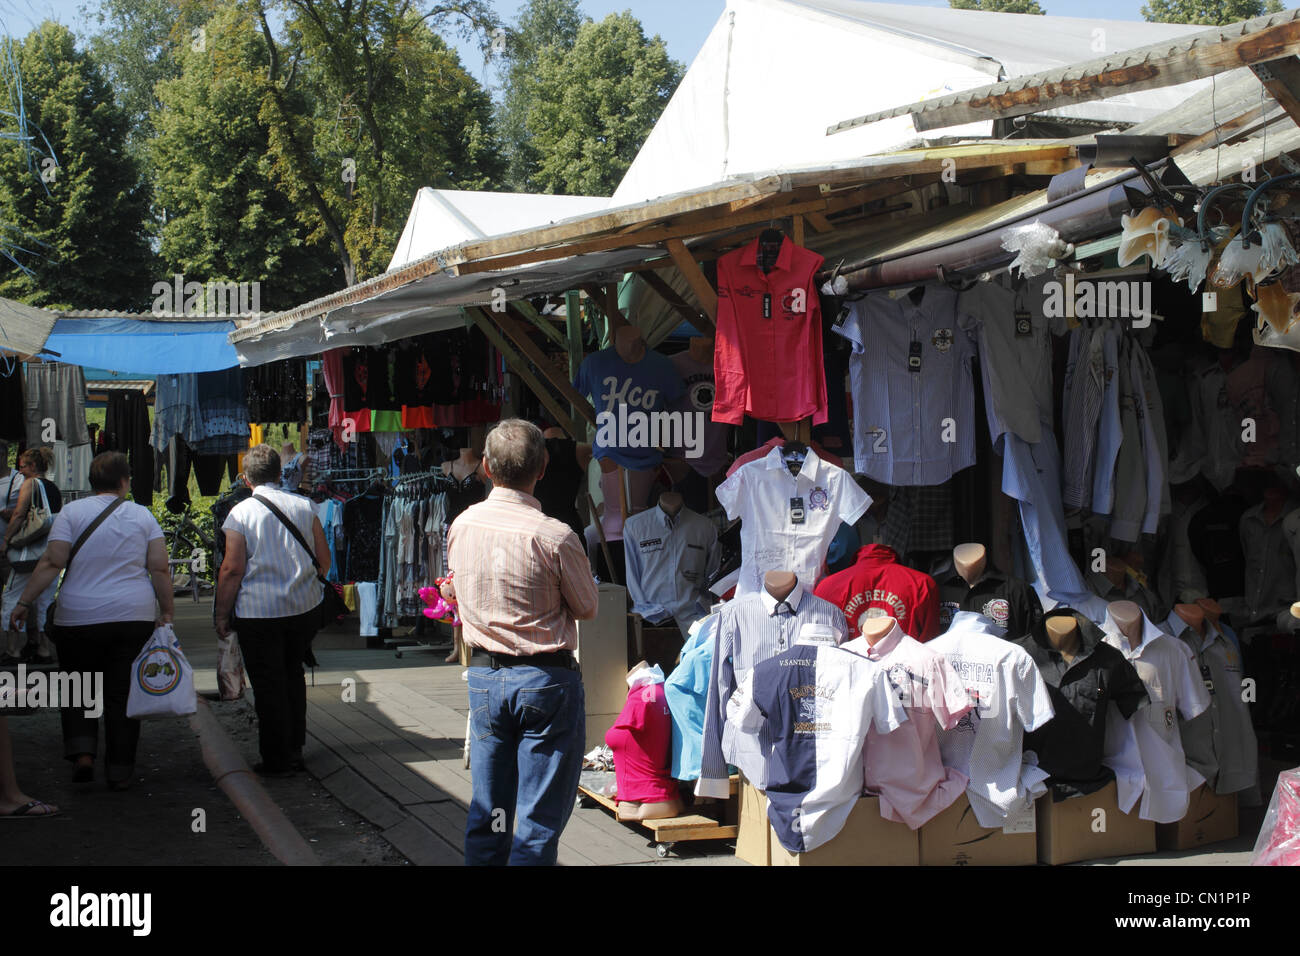 poland polen slubice polenmarkt stockfotos poland polen slubice polenmarkt bilder alamy. Black Bedroom Furniture Sets. Home Design Ideas